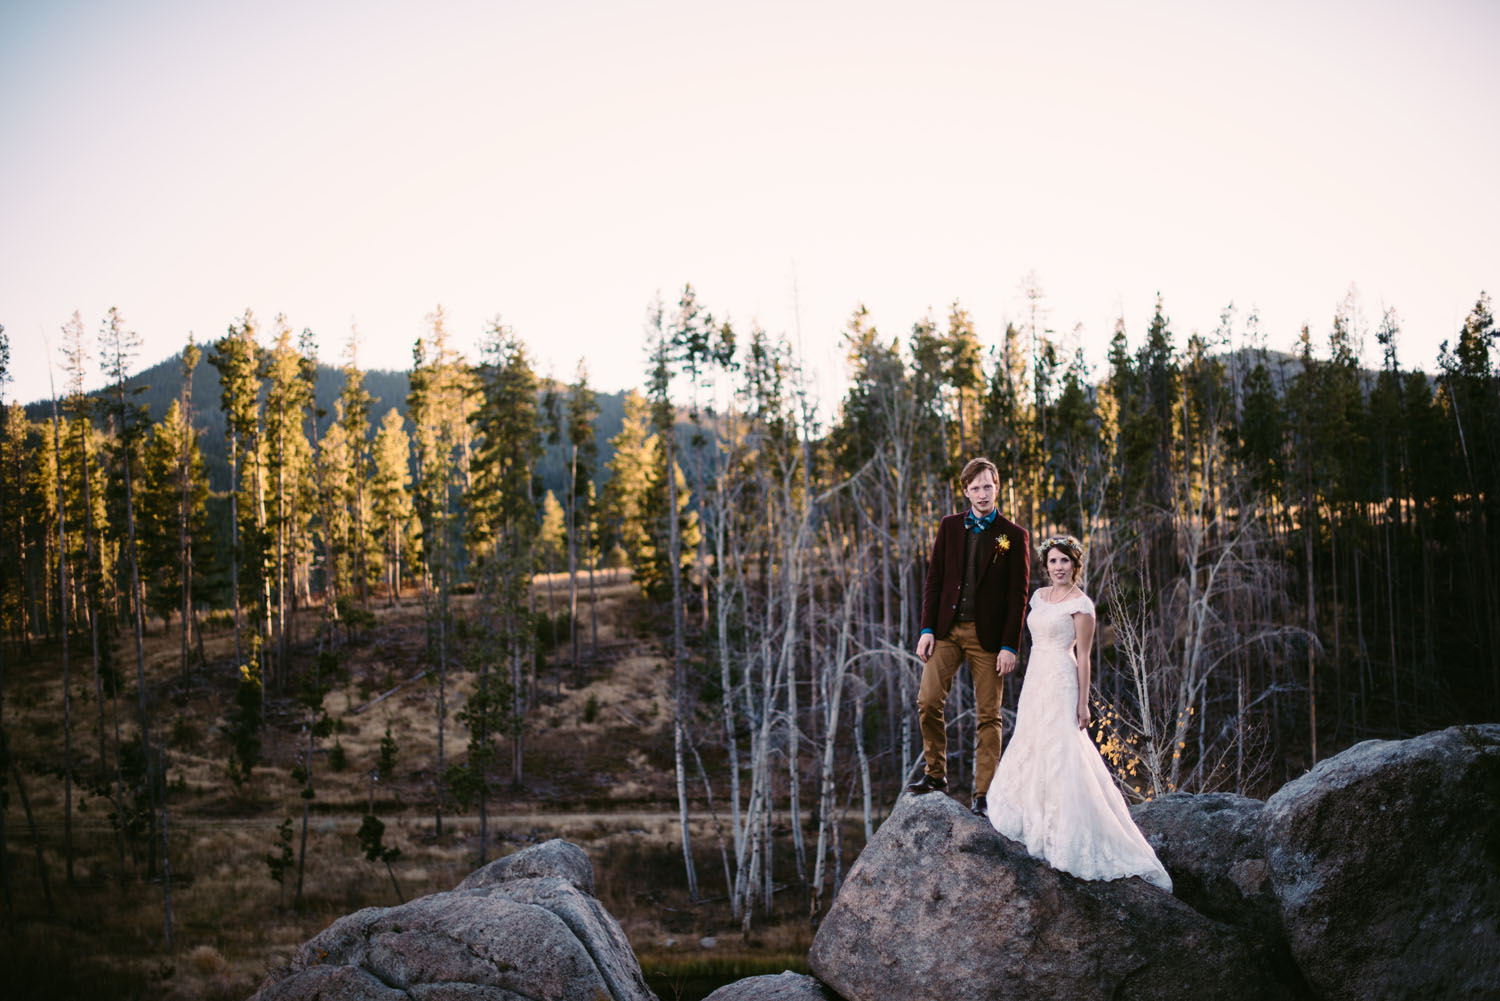 wedding-photographer-destination-wedding-montana.jpg